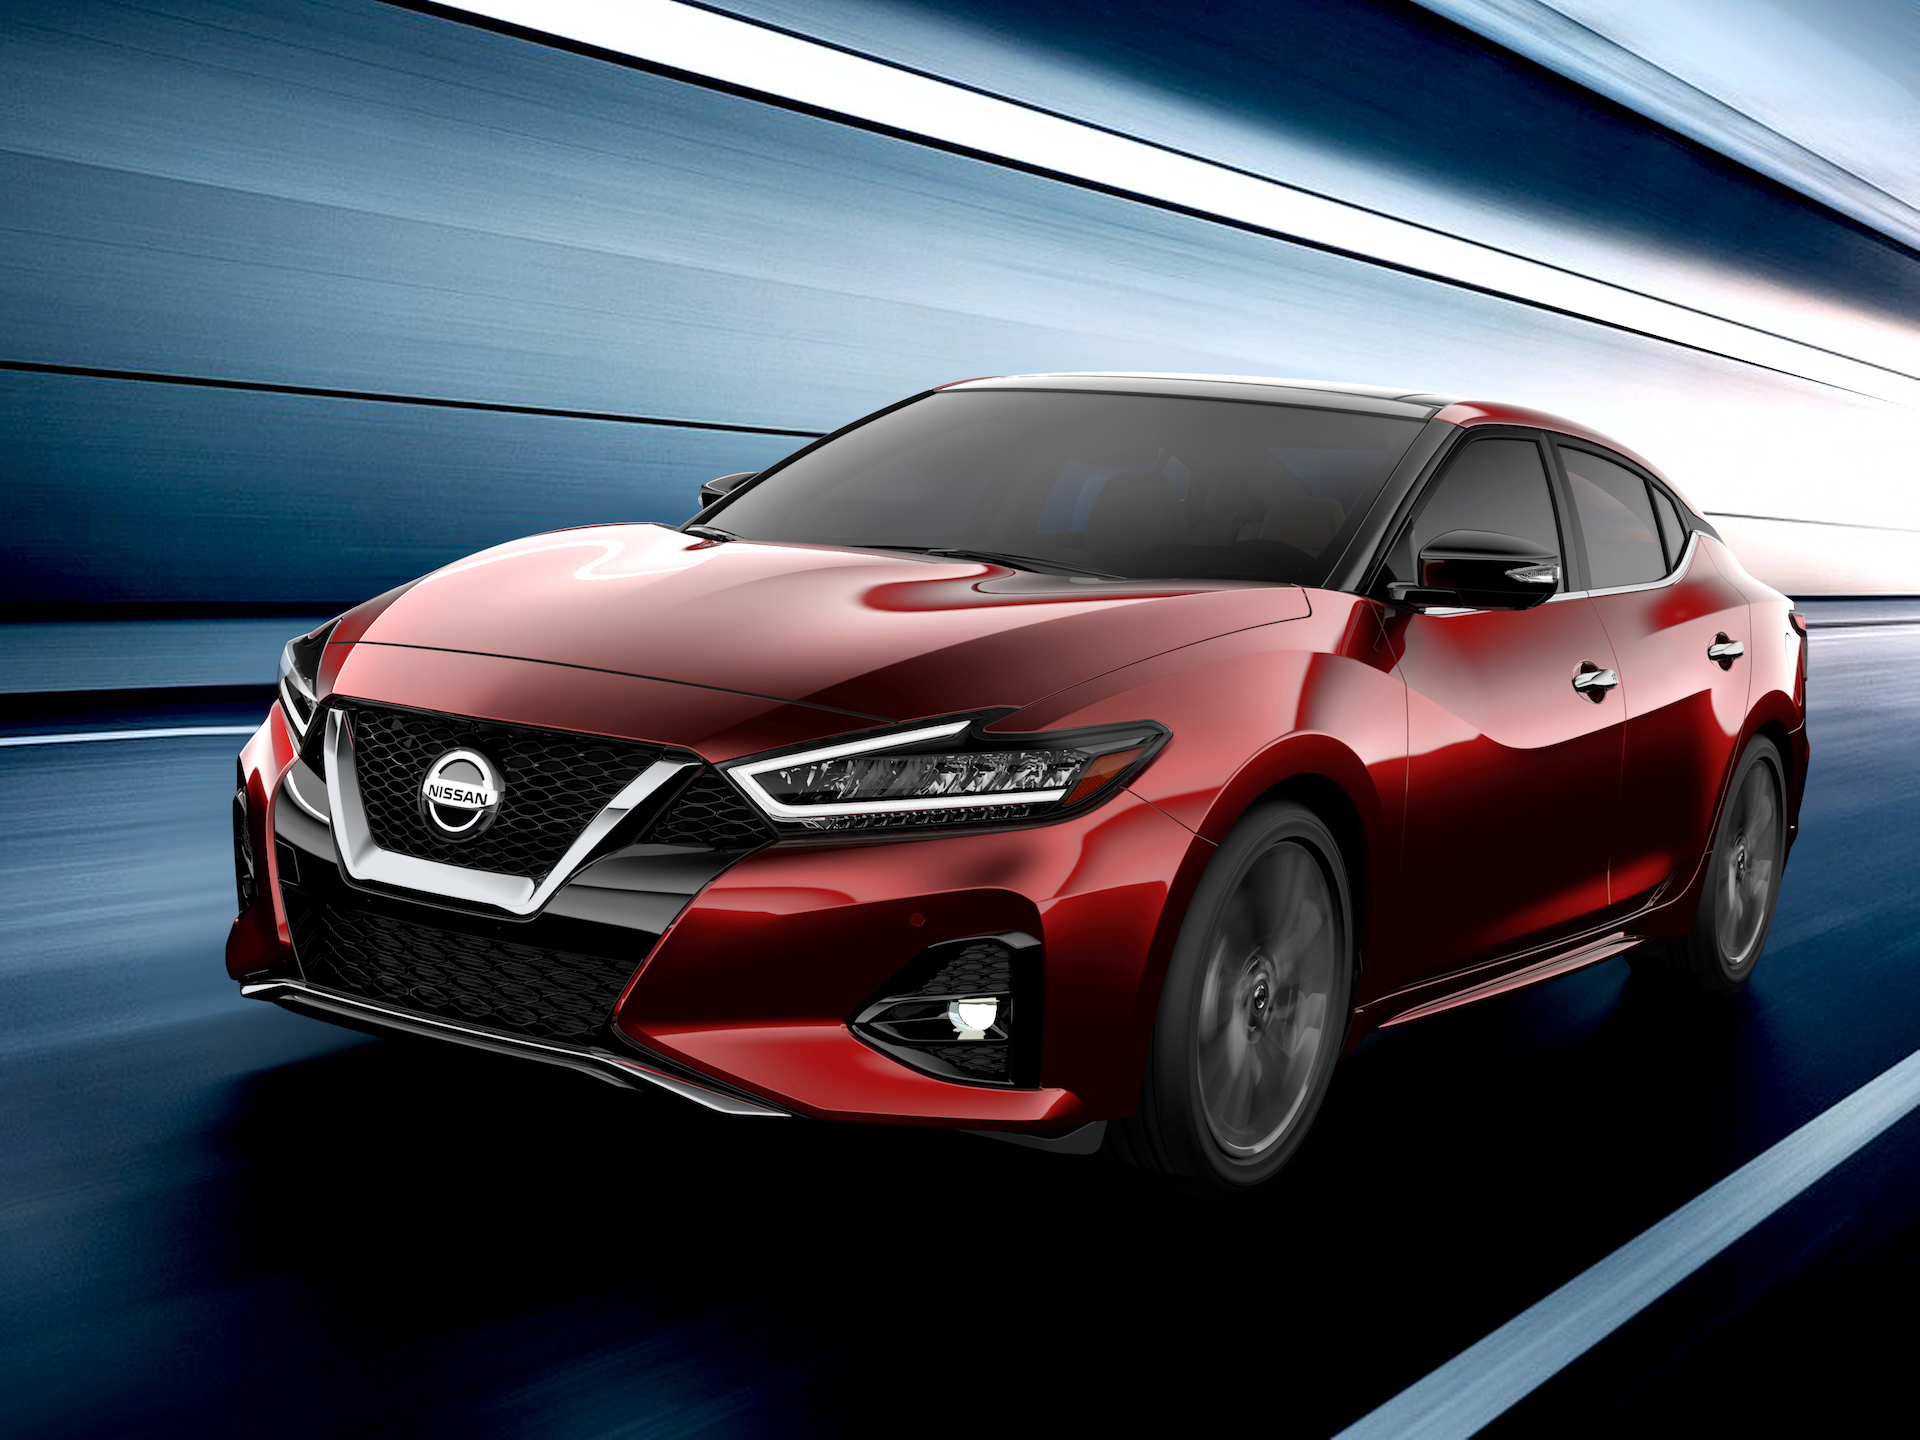 2019 Nissan Maxima revealed with minor nip-tuck